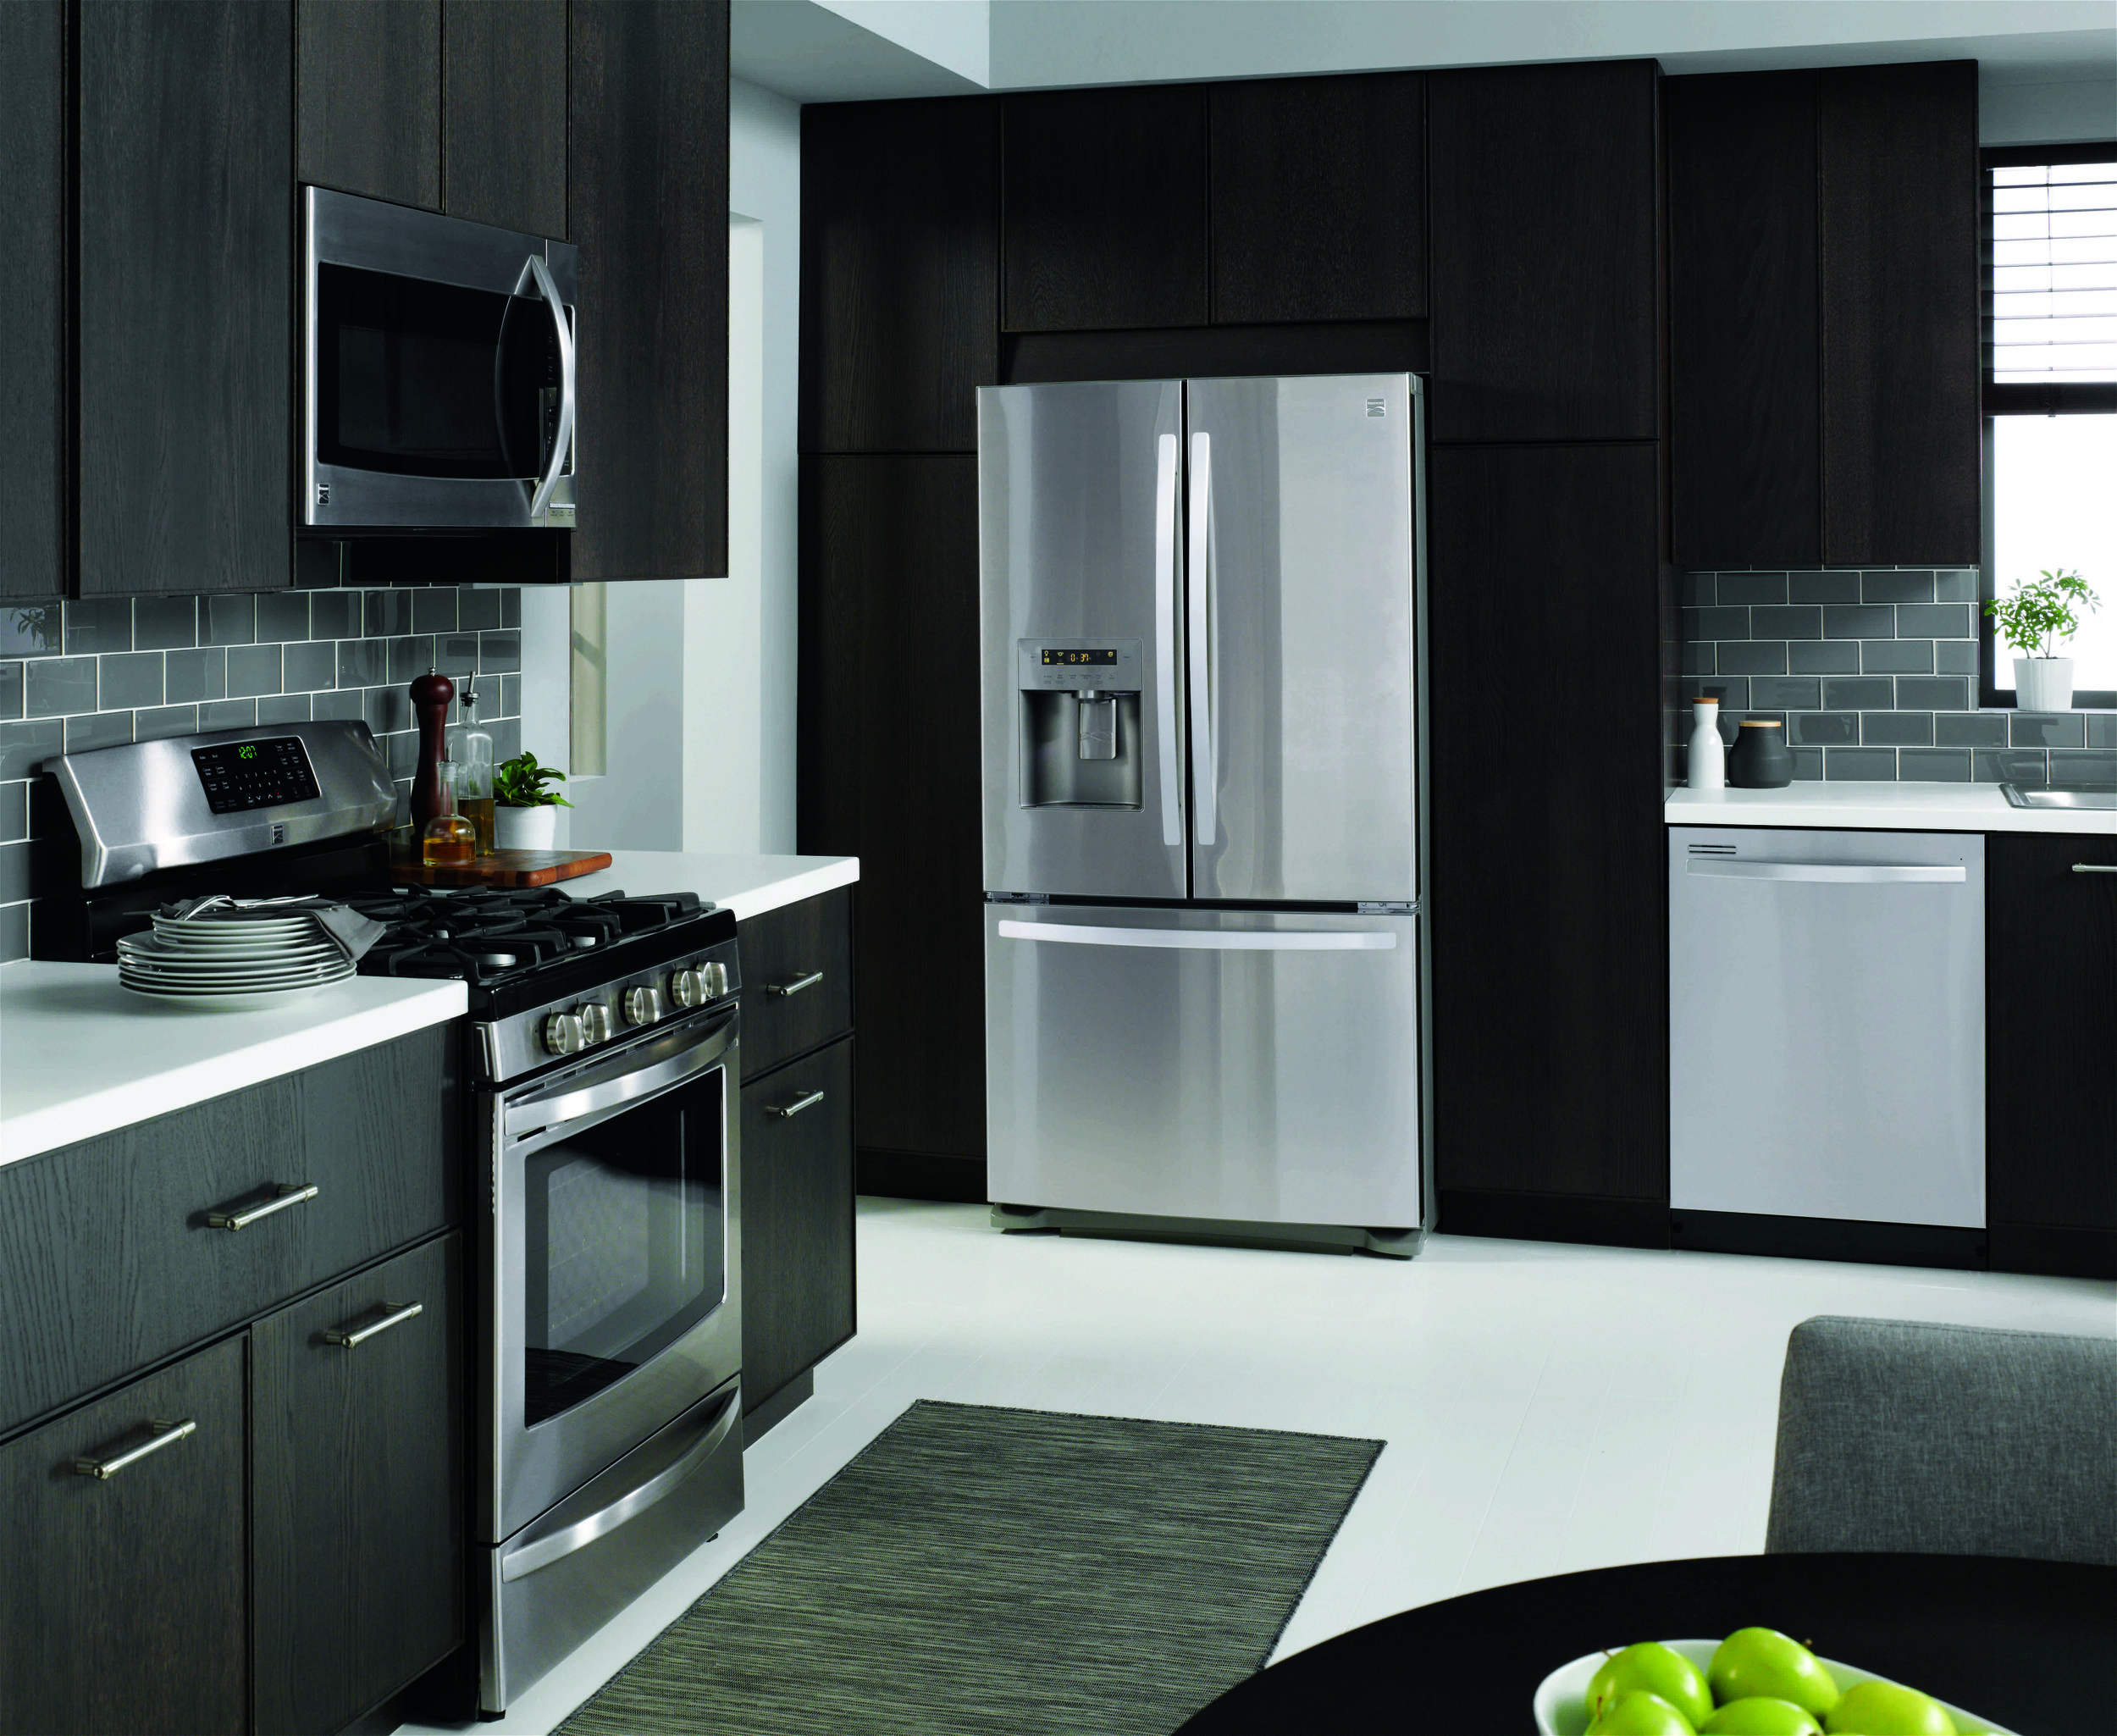 sears_kenmore_elite_kitchen_prop_interior_Stylist_hoernig_katrina.jpg